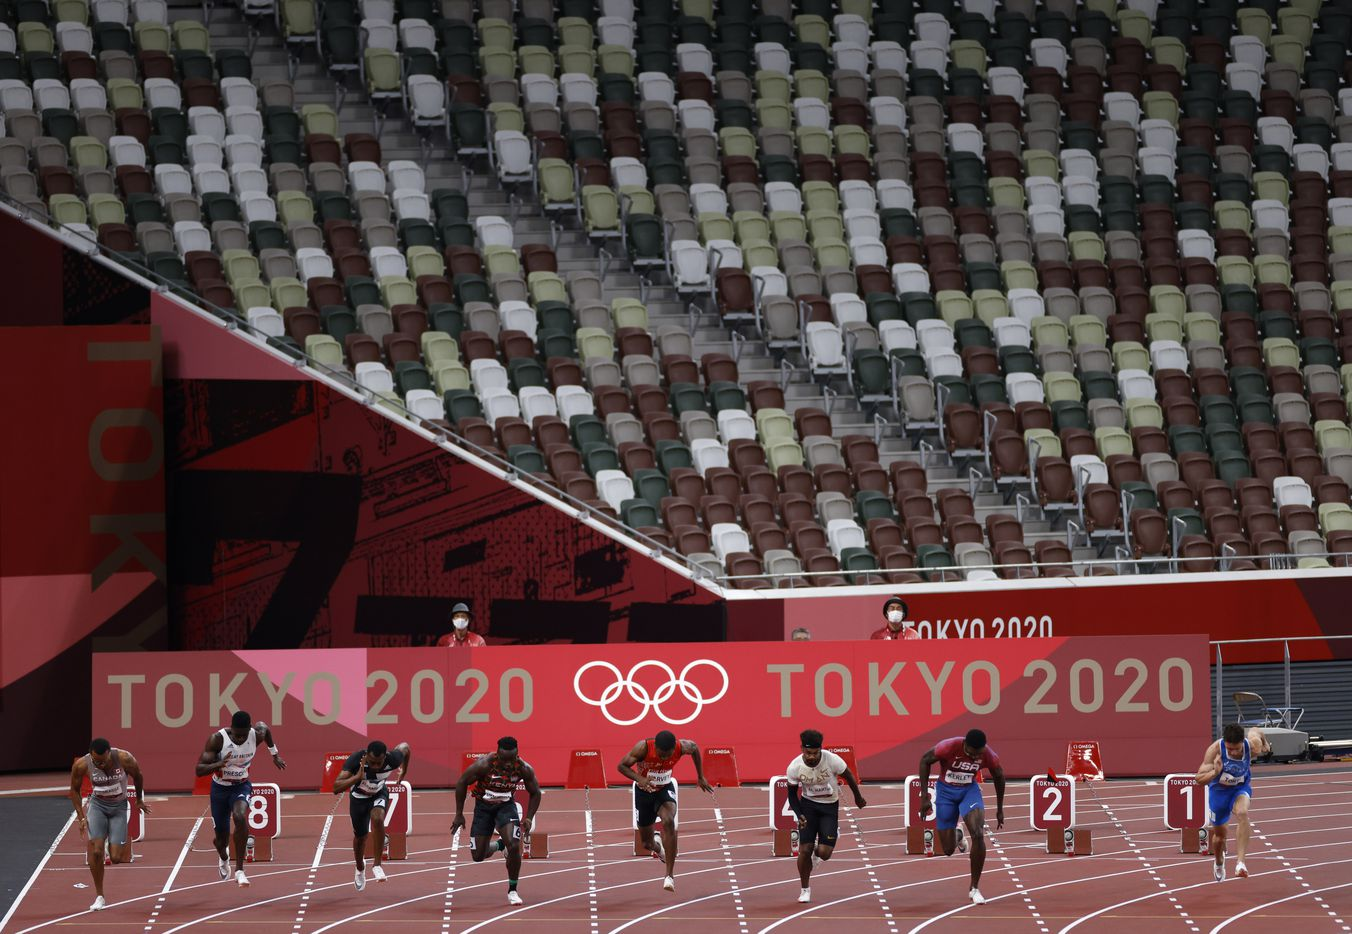 USA's Fred Kerley (lane 3) and others from heat 5 of 7 race in the 100 meter qualifying race during the postponed 2020 Tokyo Olympics at Olympic Stadium, on Saturday, July 31, 2021, in Tokyo, Japan. Kerley finished second with a time of 9.97 seconds to qualify for the next round. (Vernon Bryant/The Dallas Morning News)